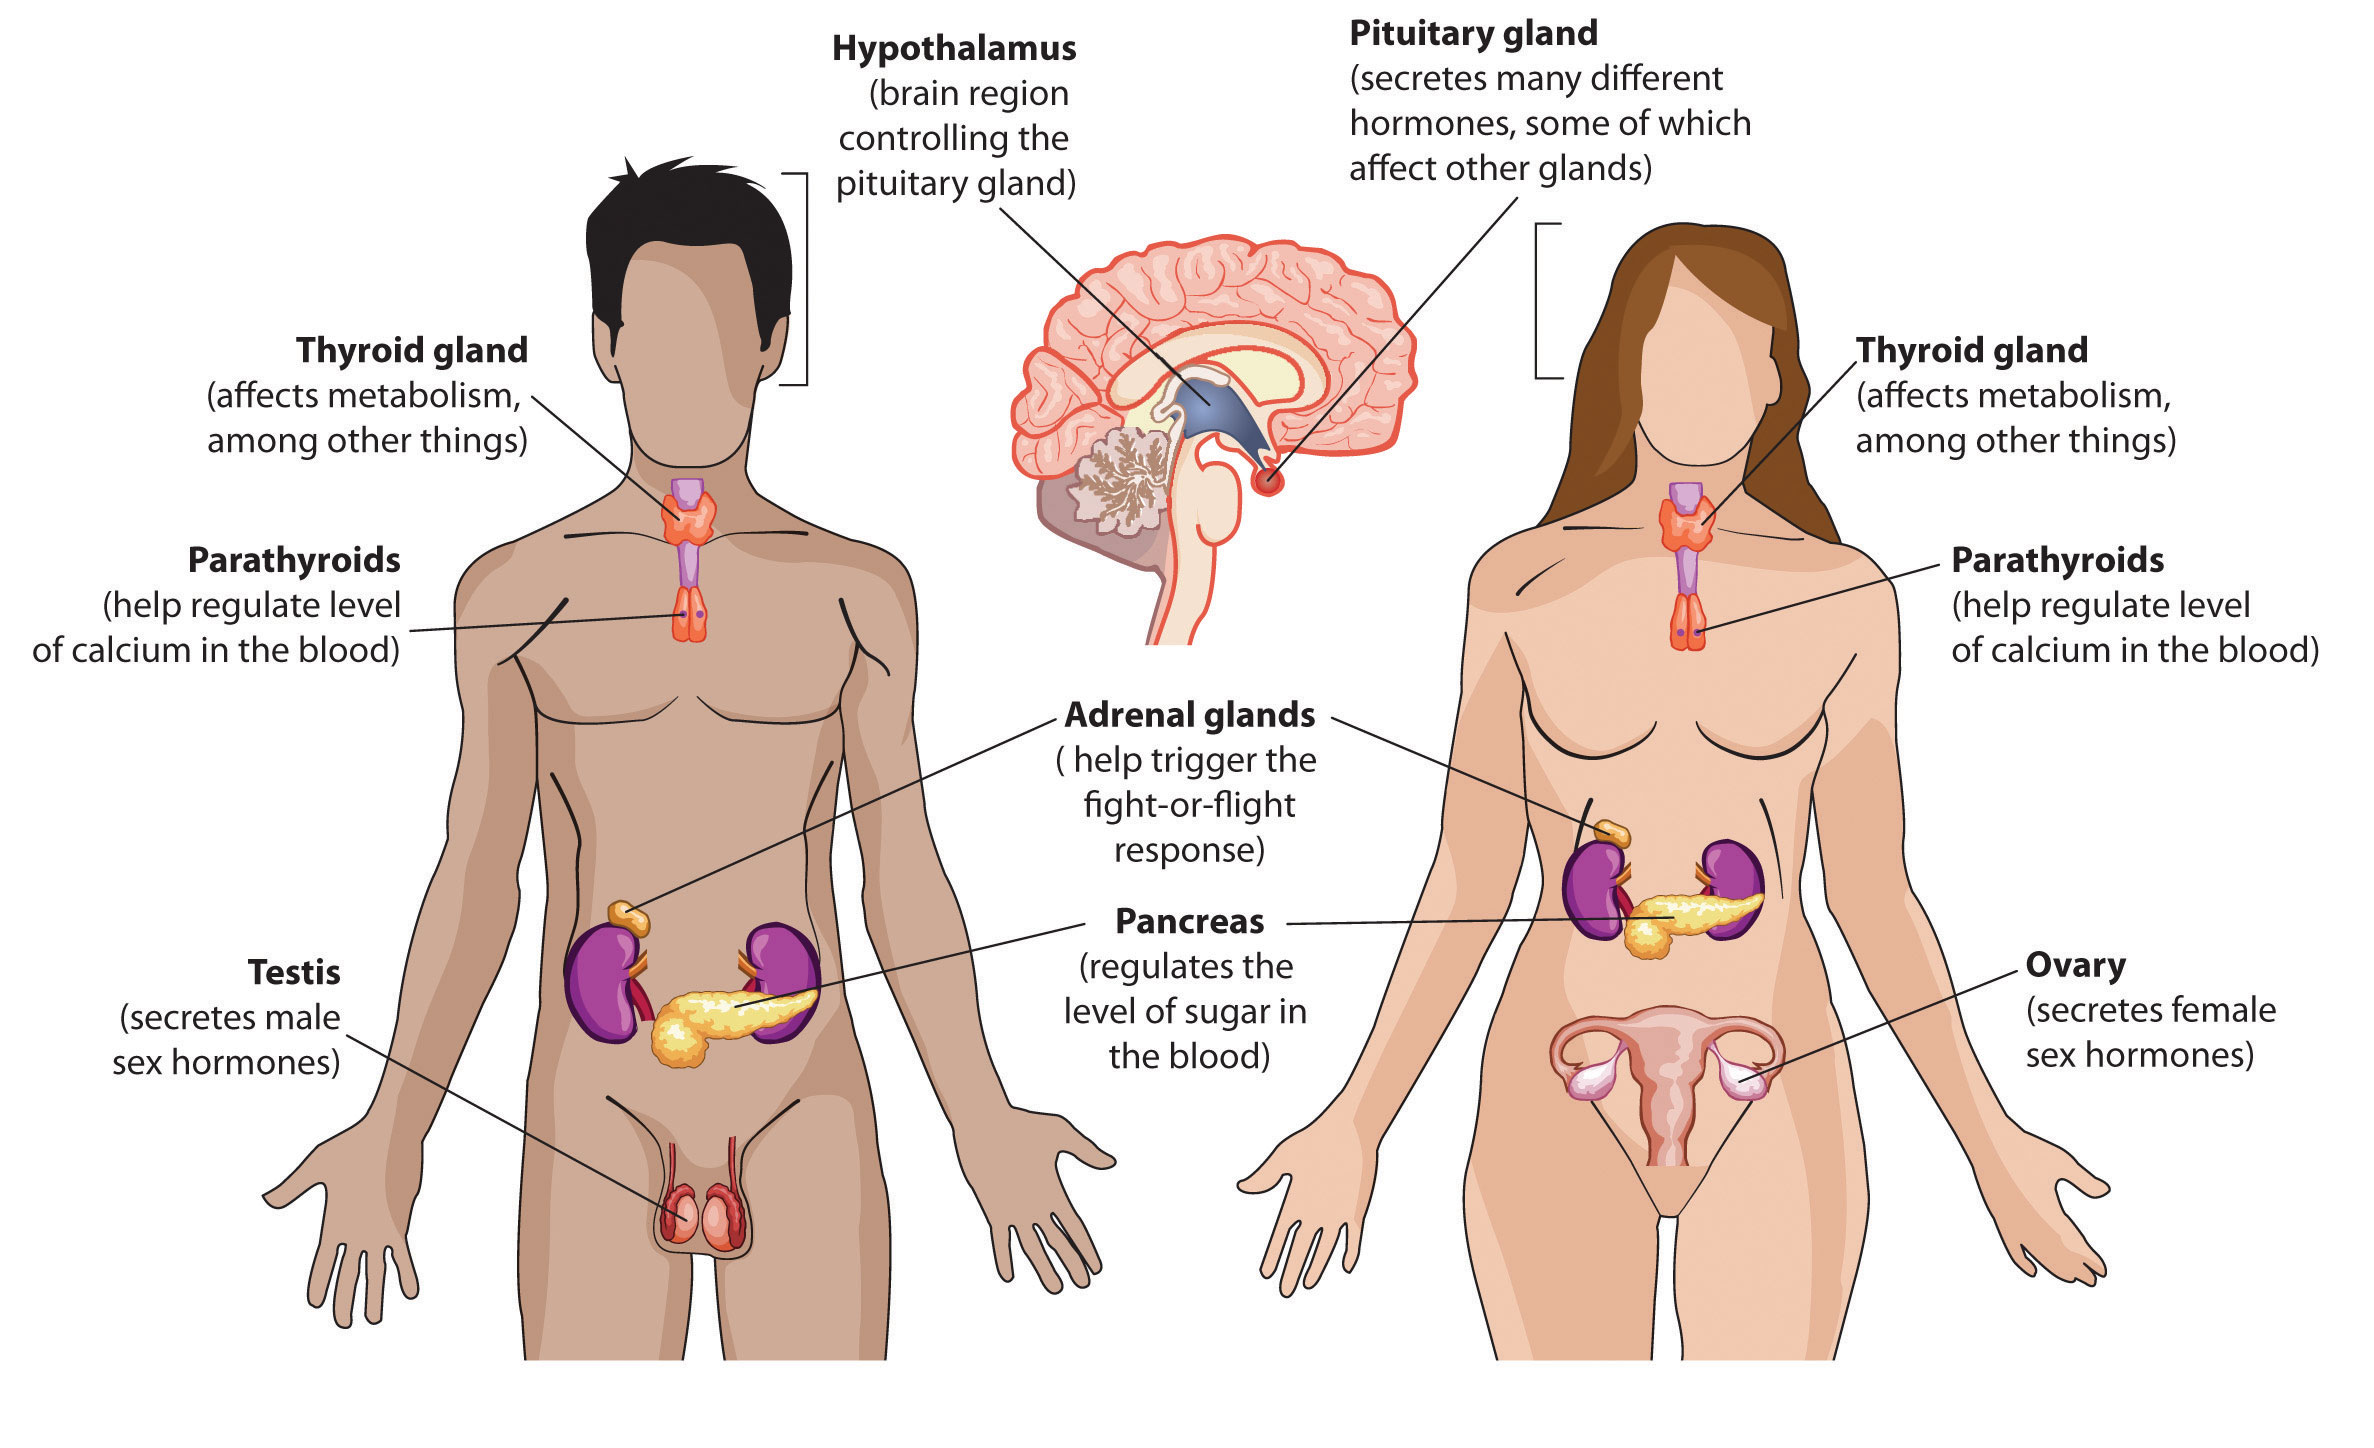 http://anatomy-medicine.com/uploads/posts/2016-11/1478343179_the-endocrine-system.jpg